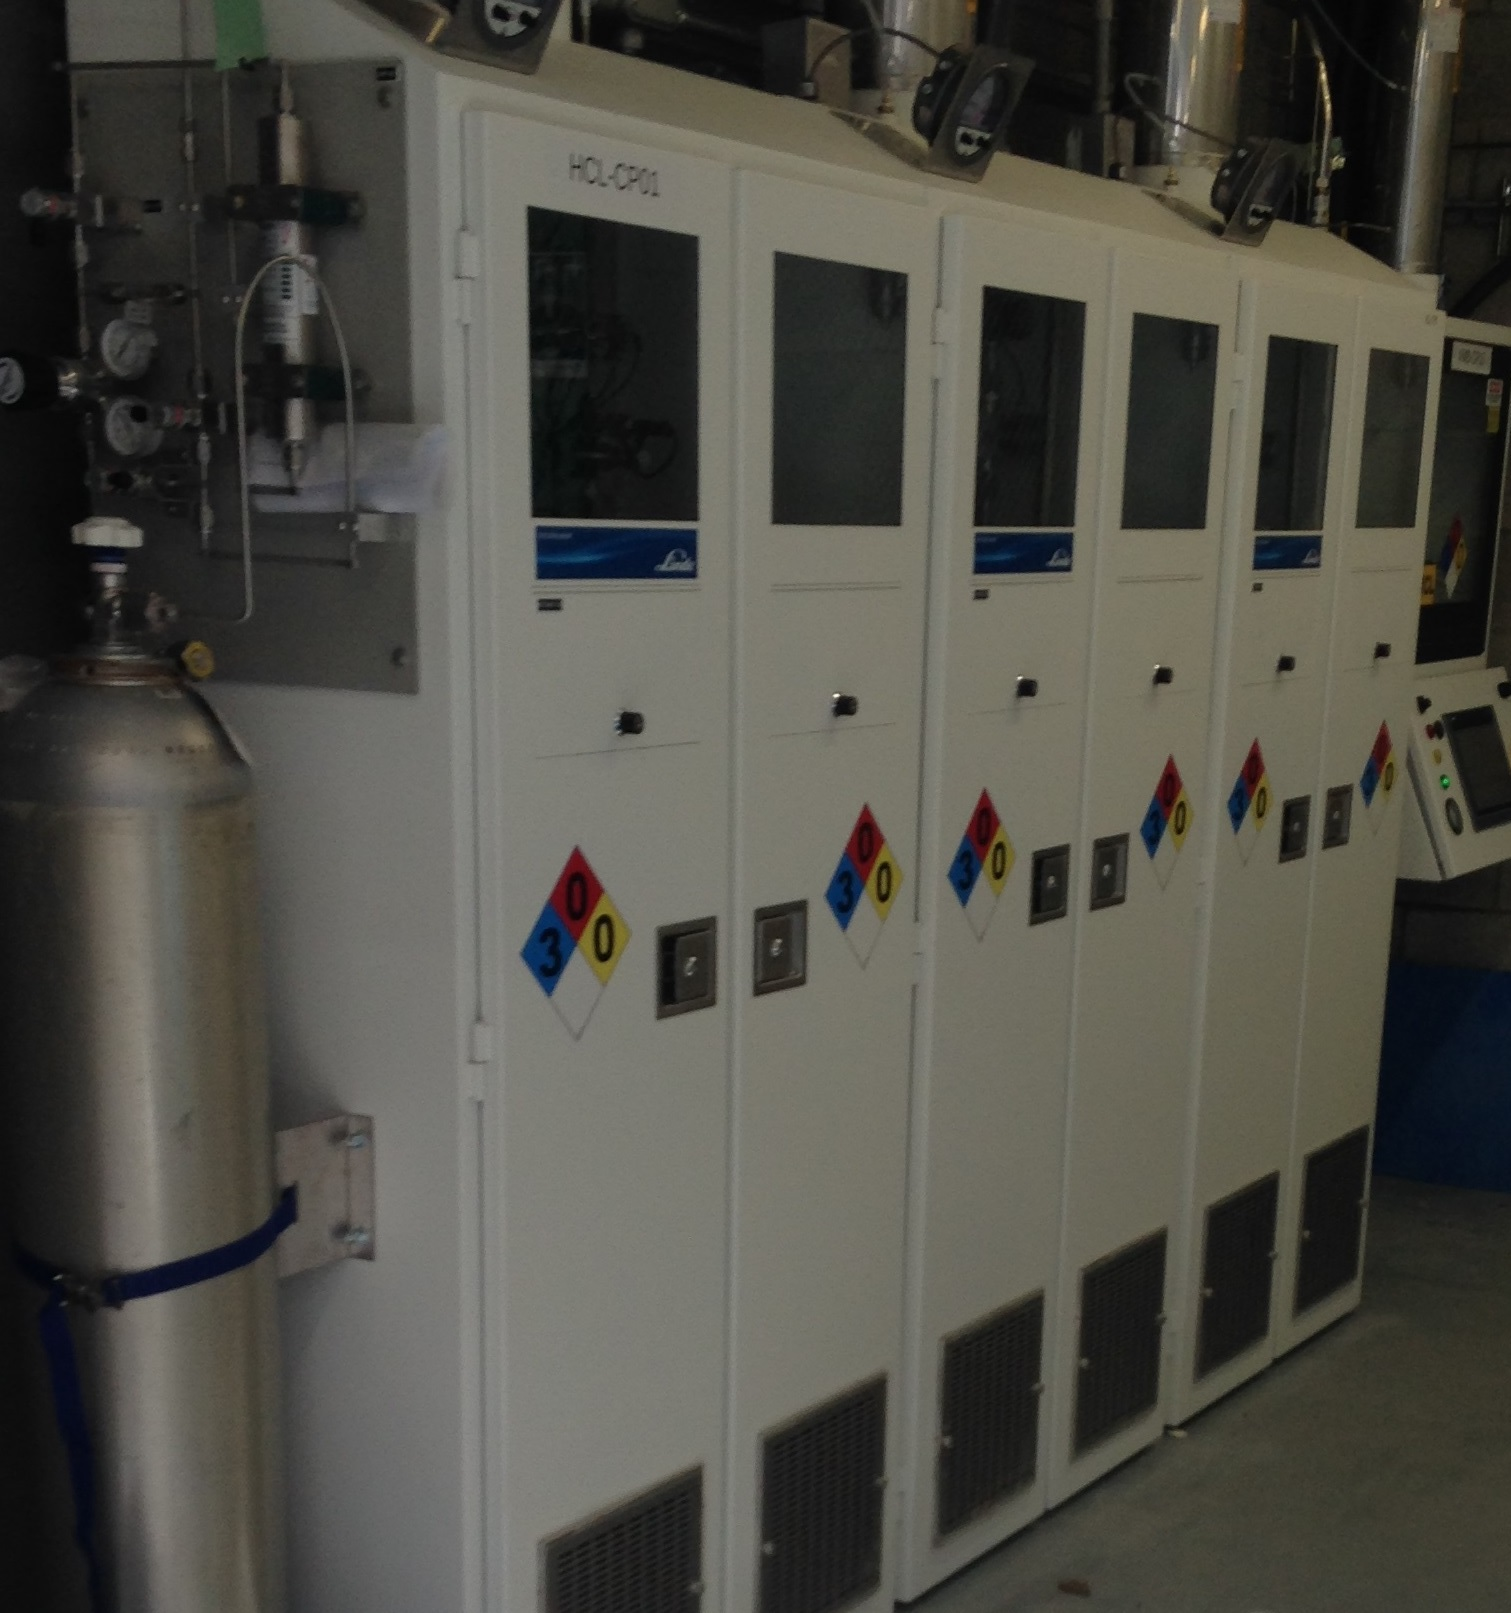 Equipment for electronic bulk specialty gas system (Image should be retouched before usage)